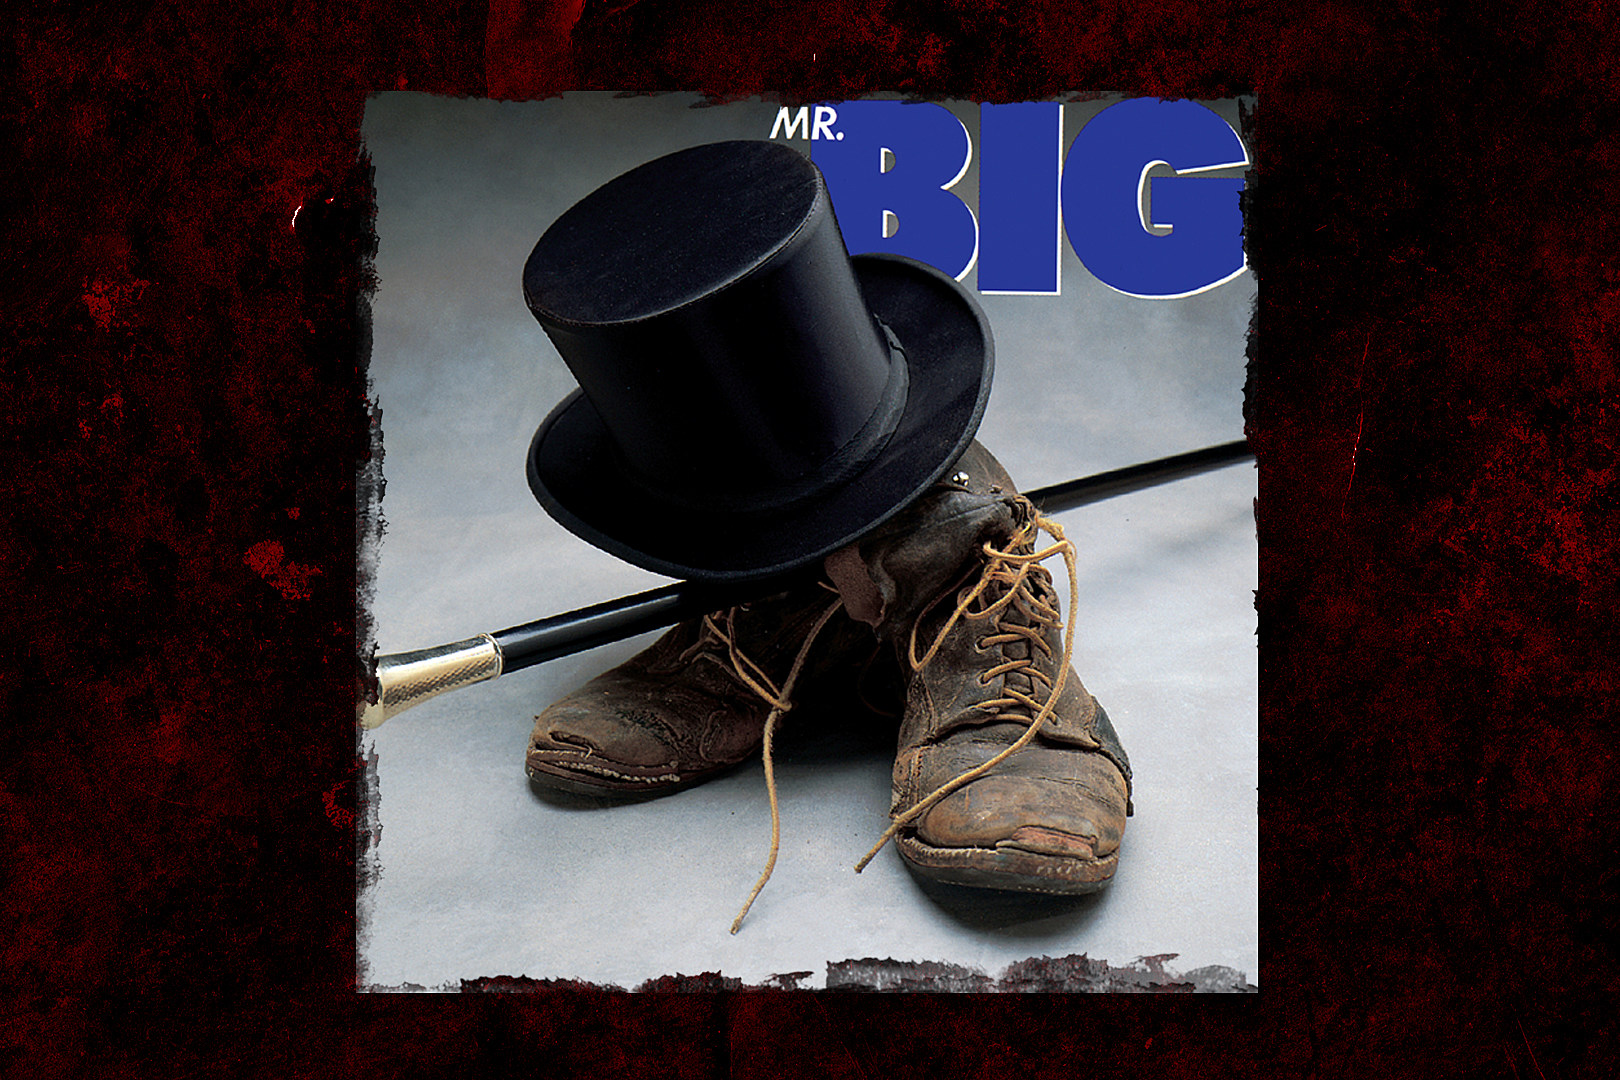 Whatever Happened to Mr. Big's Debut Album Top Hat + Shoes?